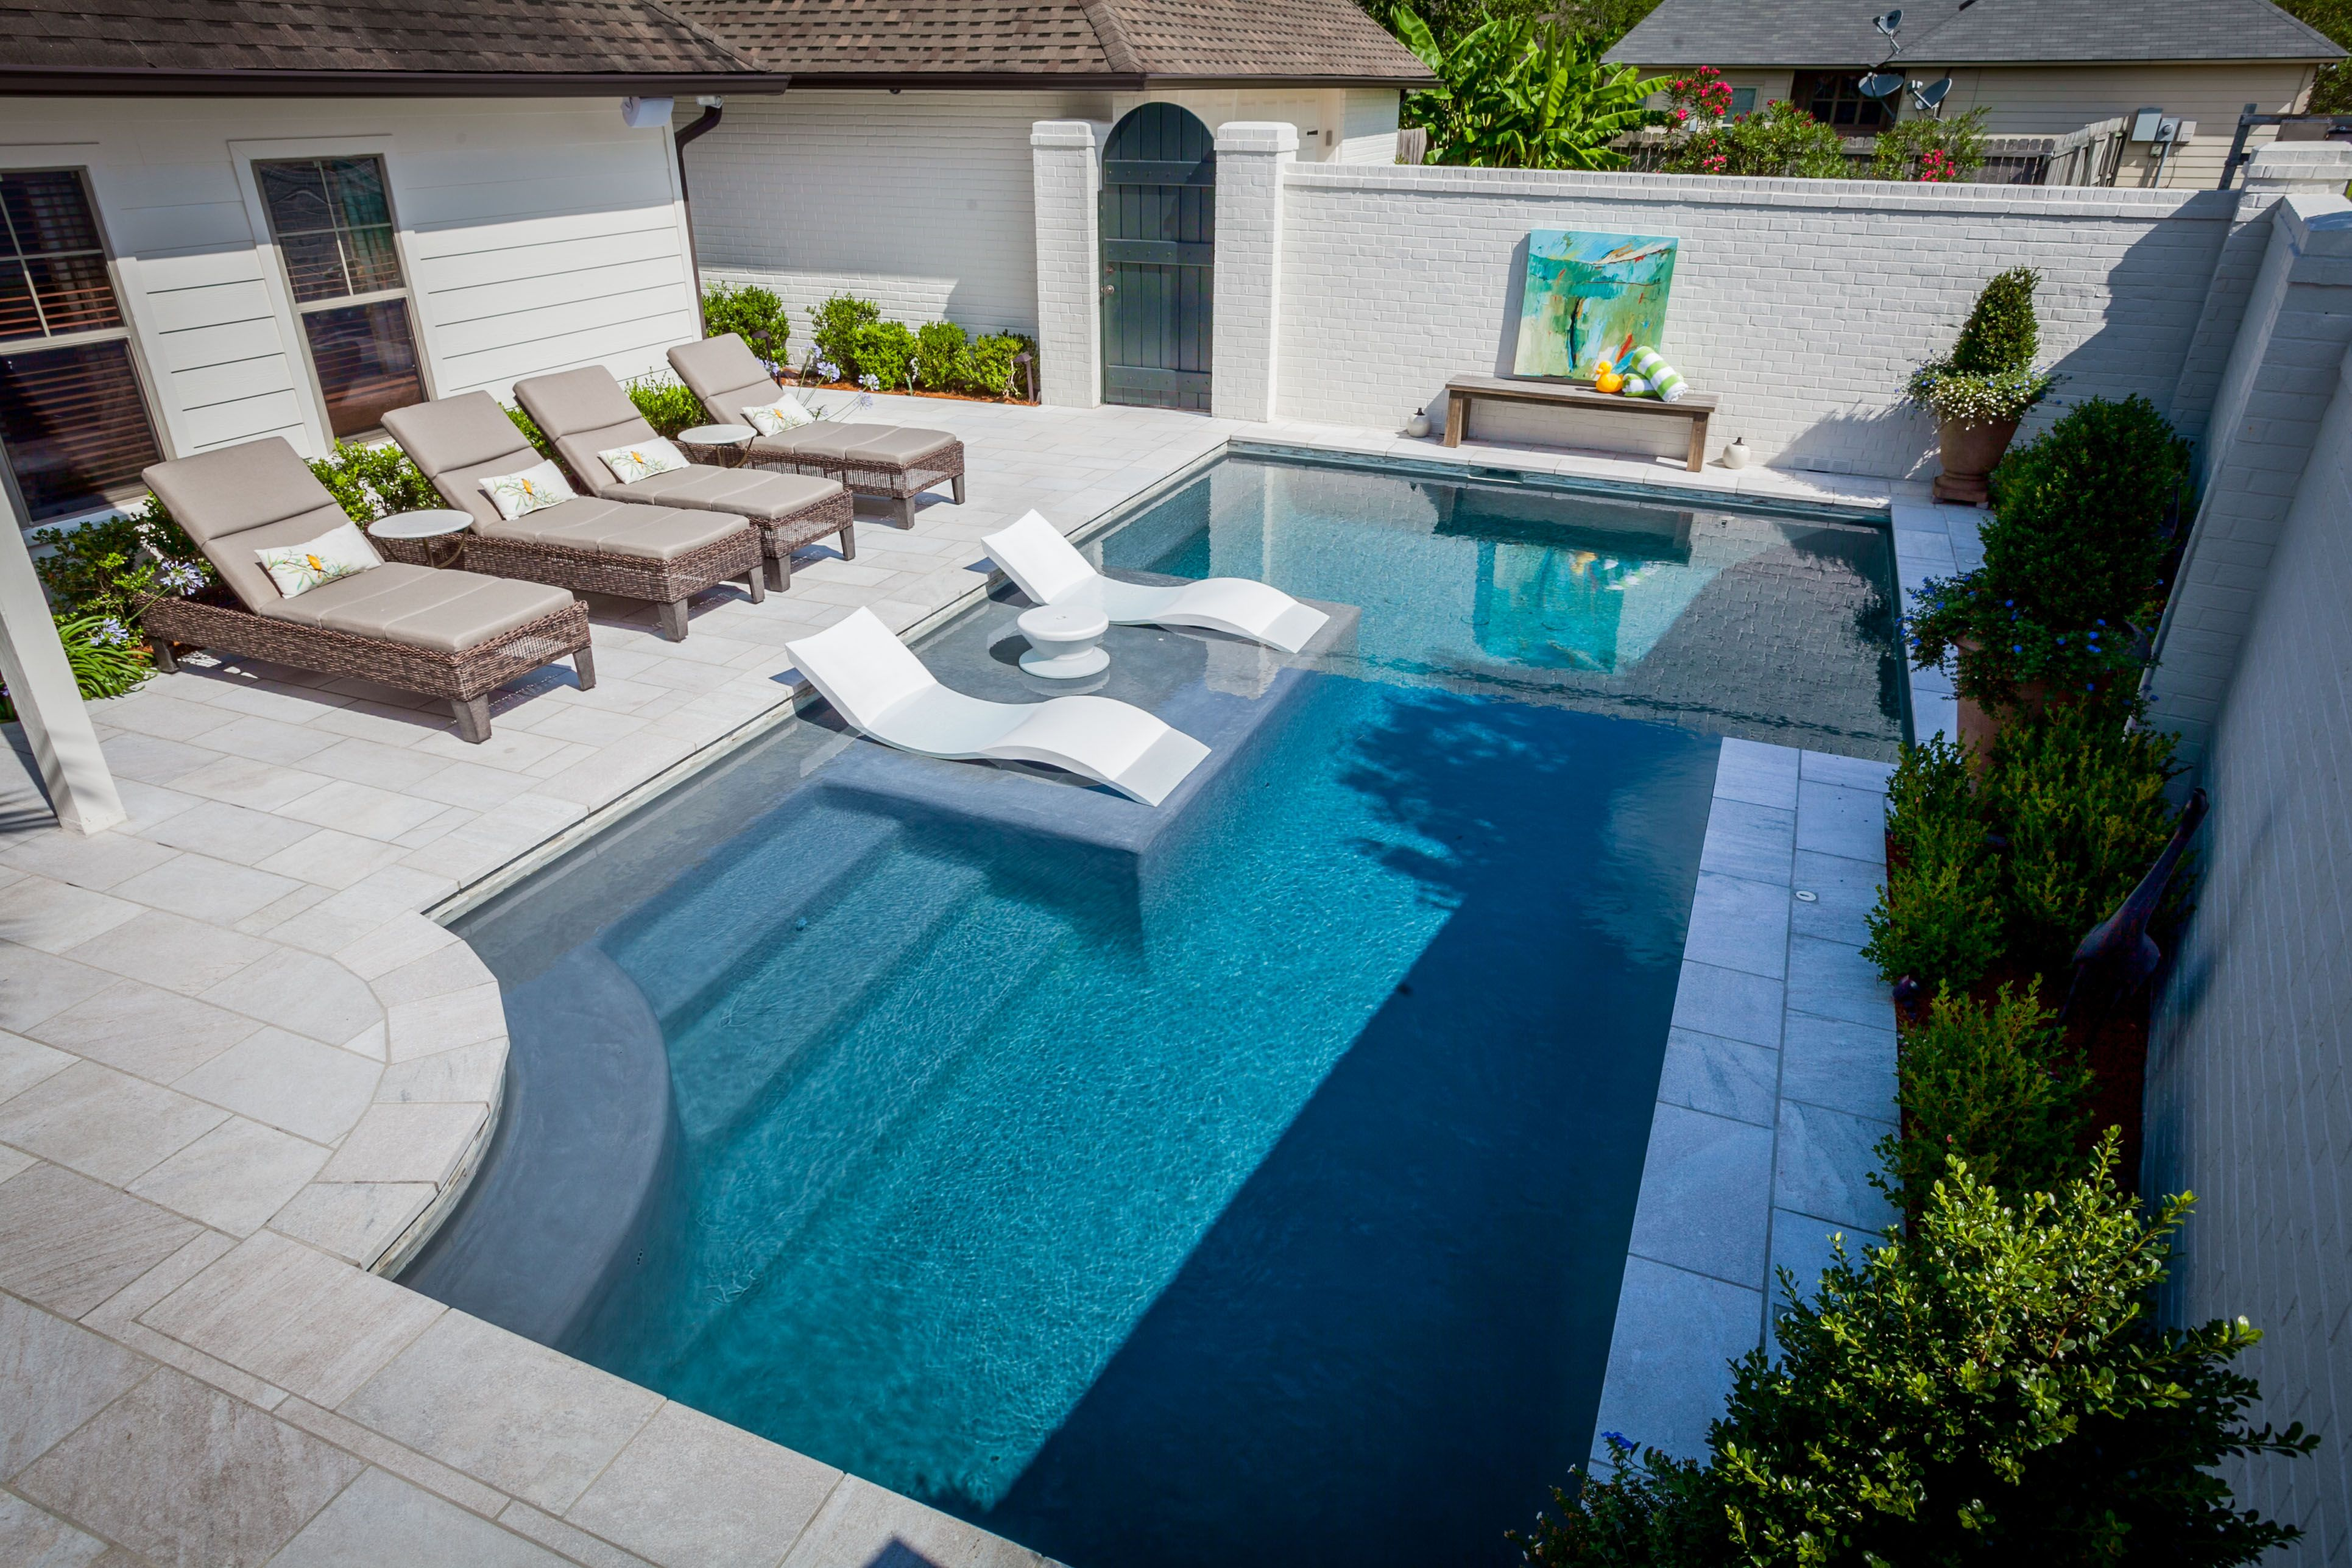 Create The Perfect Outdoor Scene With Ledge Lounger In Pool